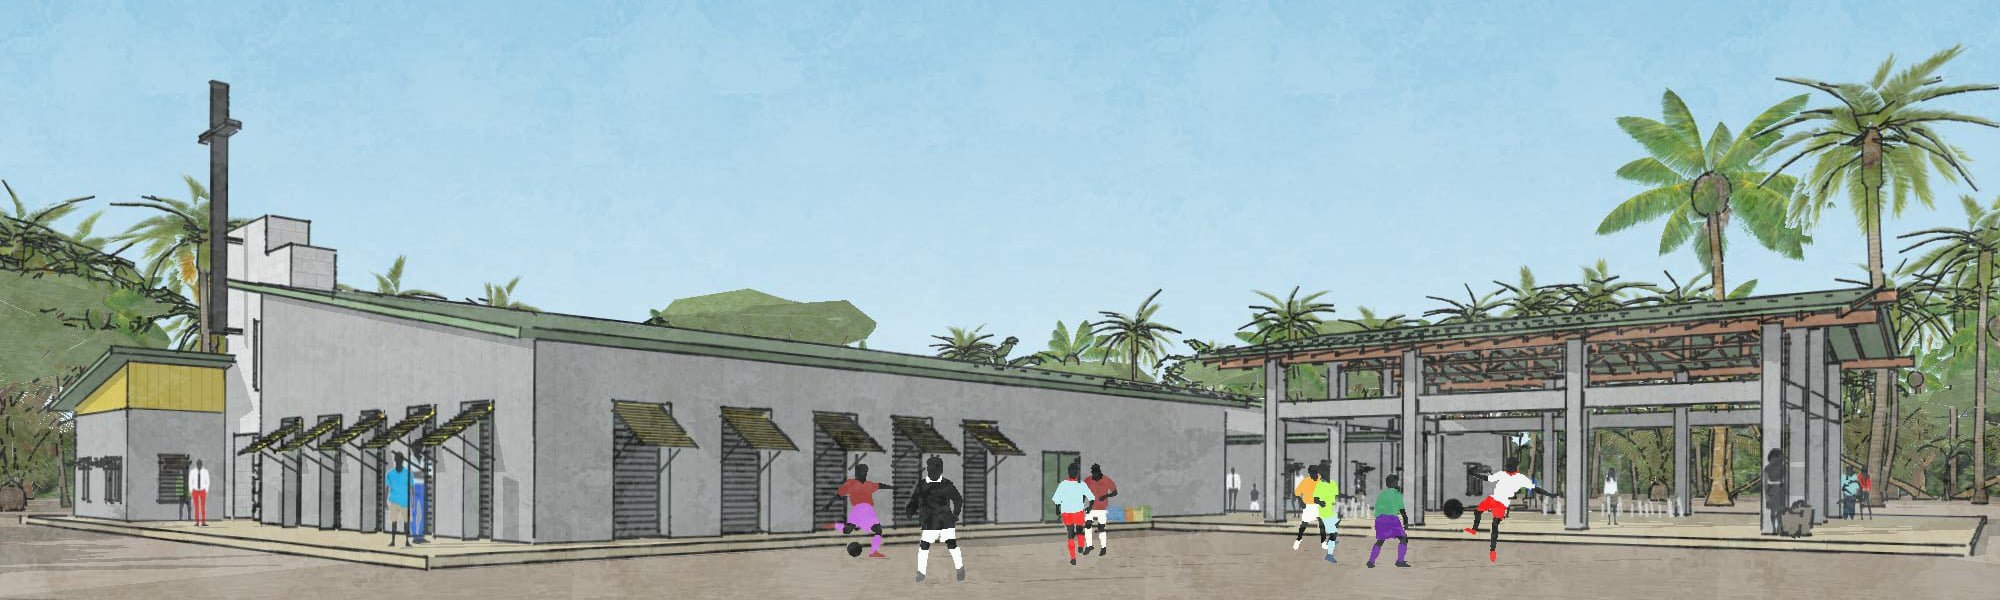 Haiti Project Exterior Perspective (2000x600)